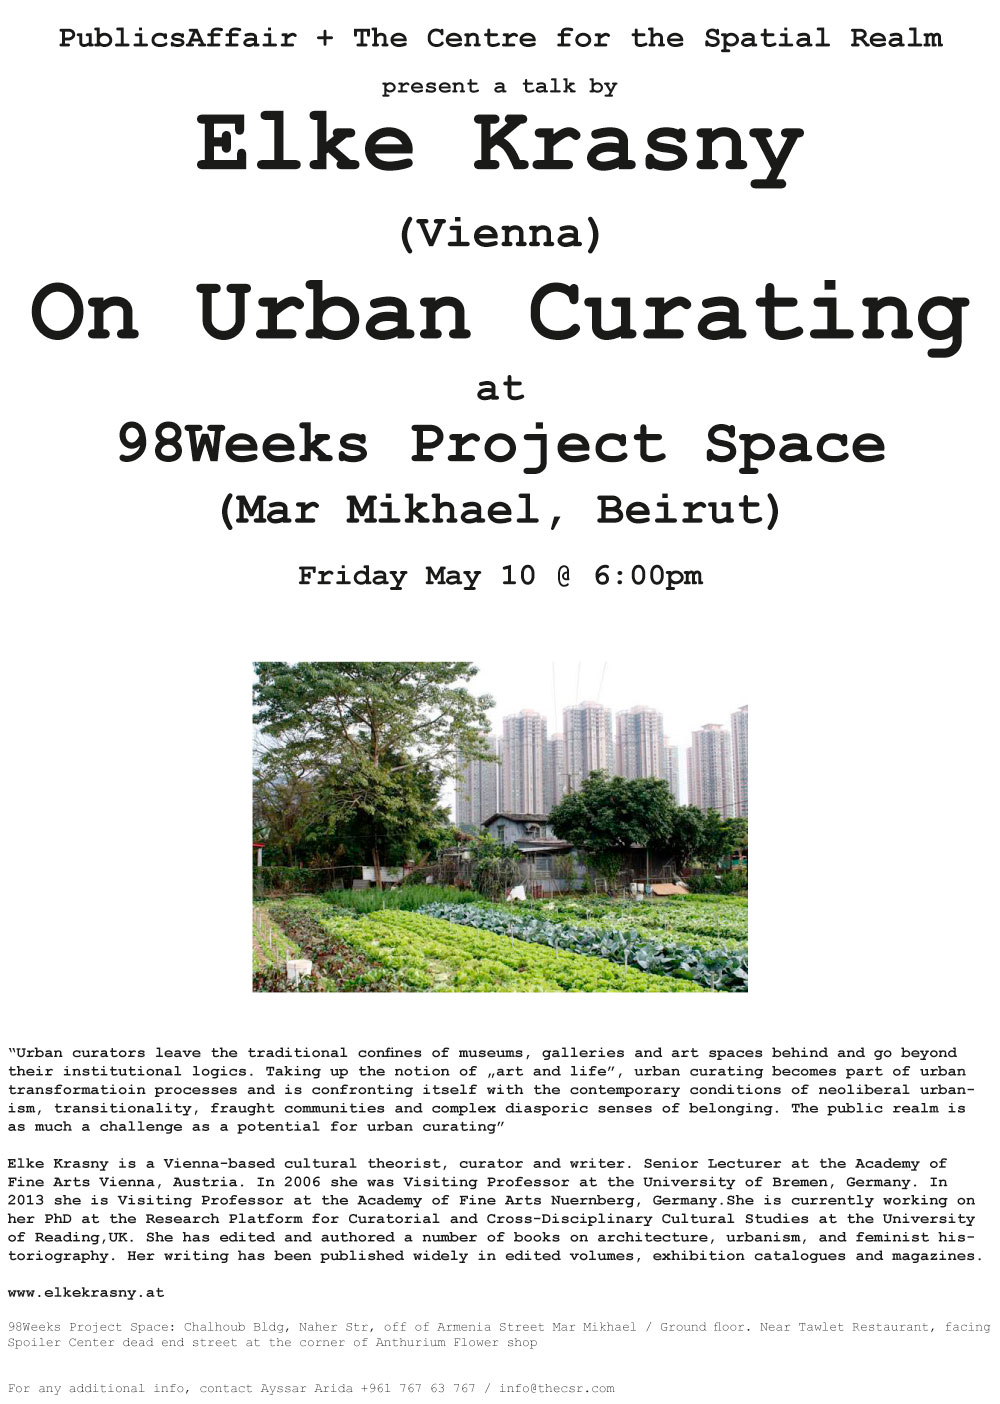 Elke-Krasny-On-Urban-Curating-at-98weeks_1000pxl